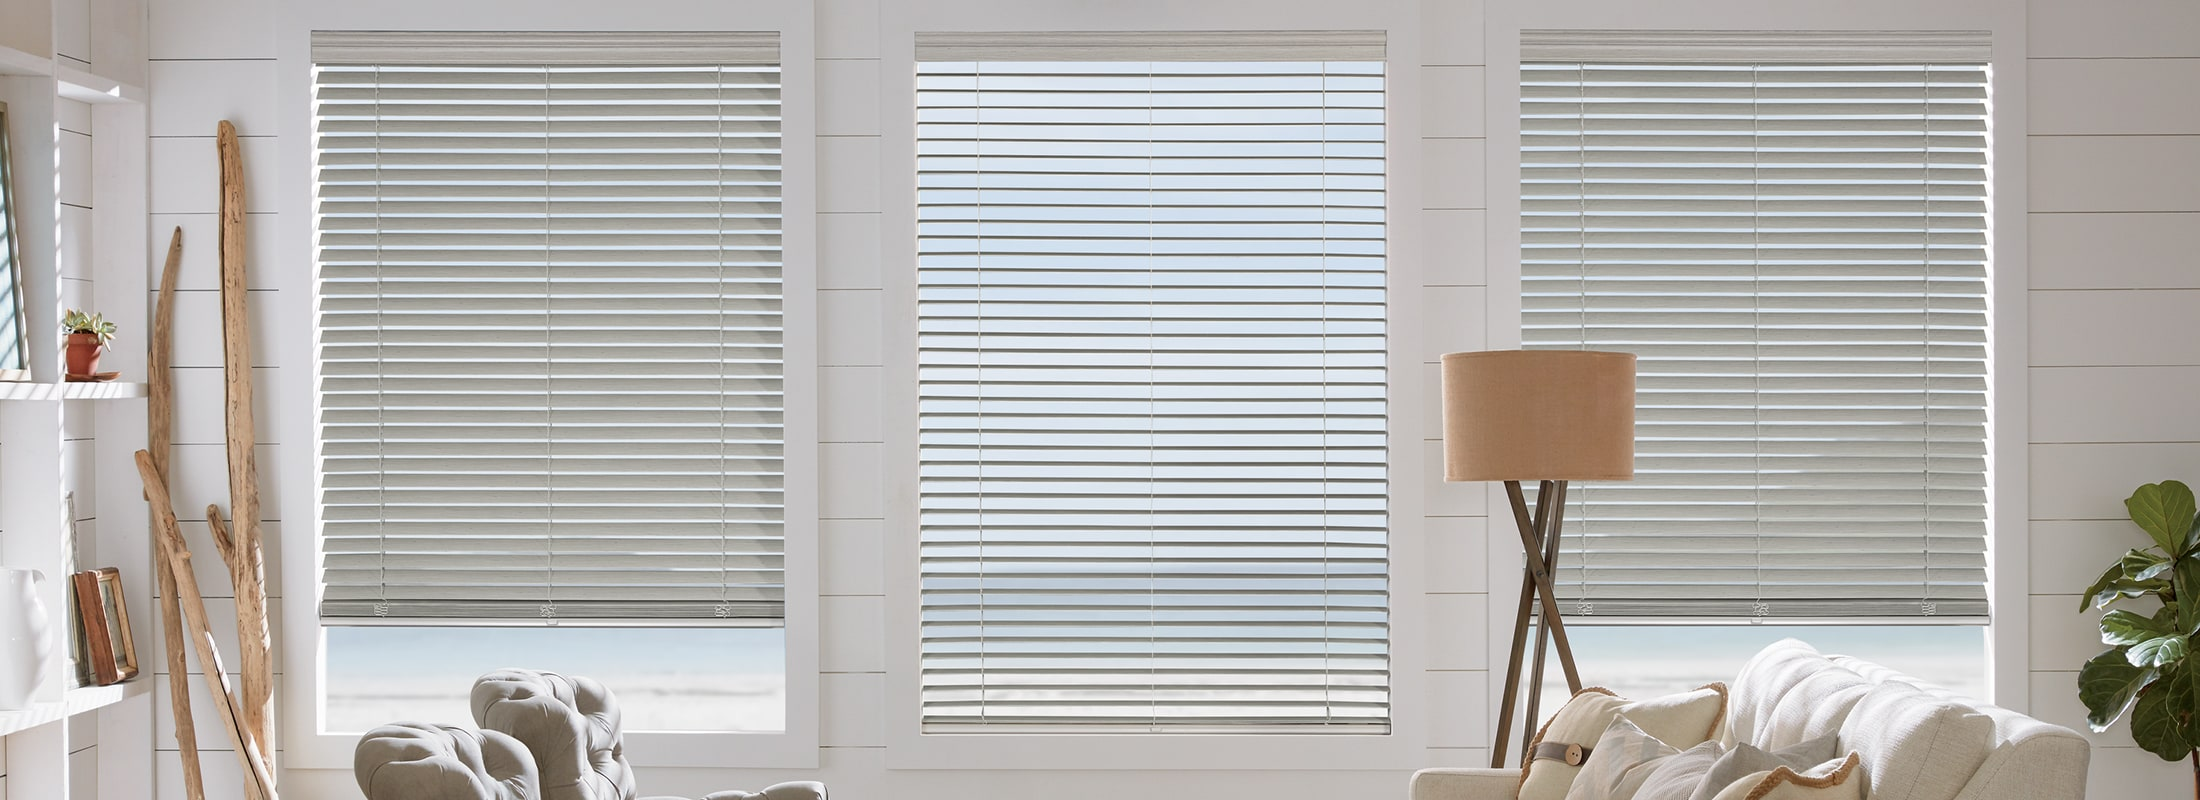 Horizontal Blinds Wood Metal Faux Wood Hunter Douglas